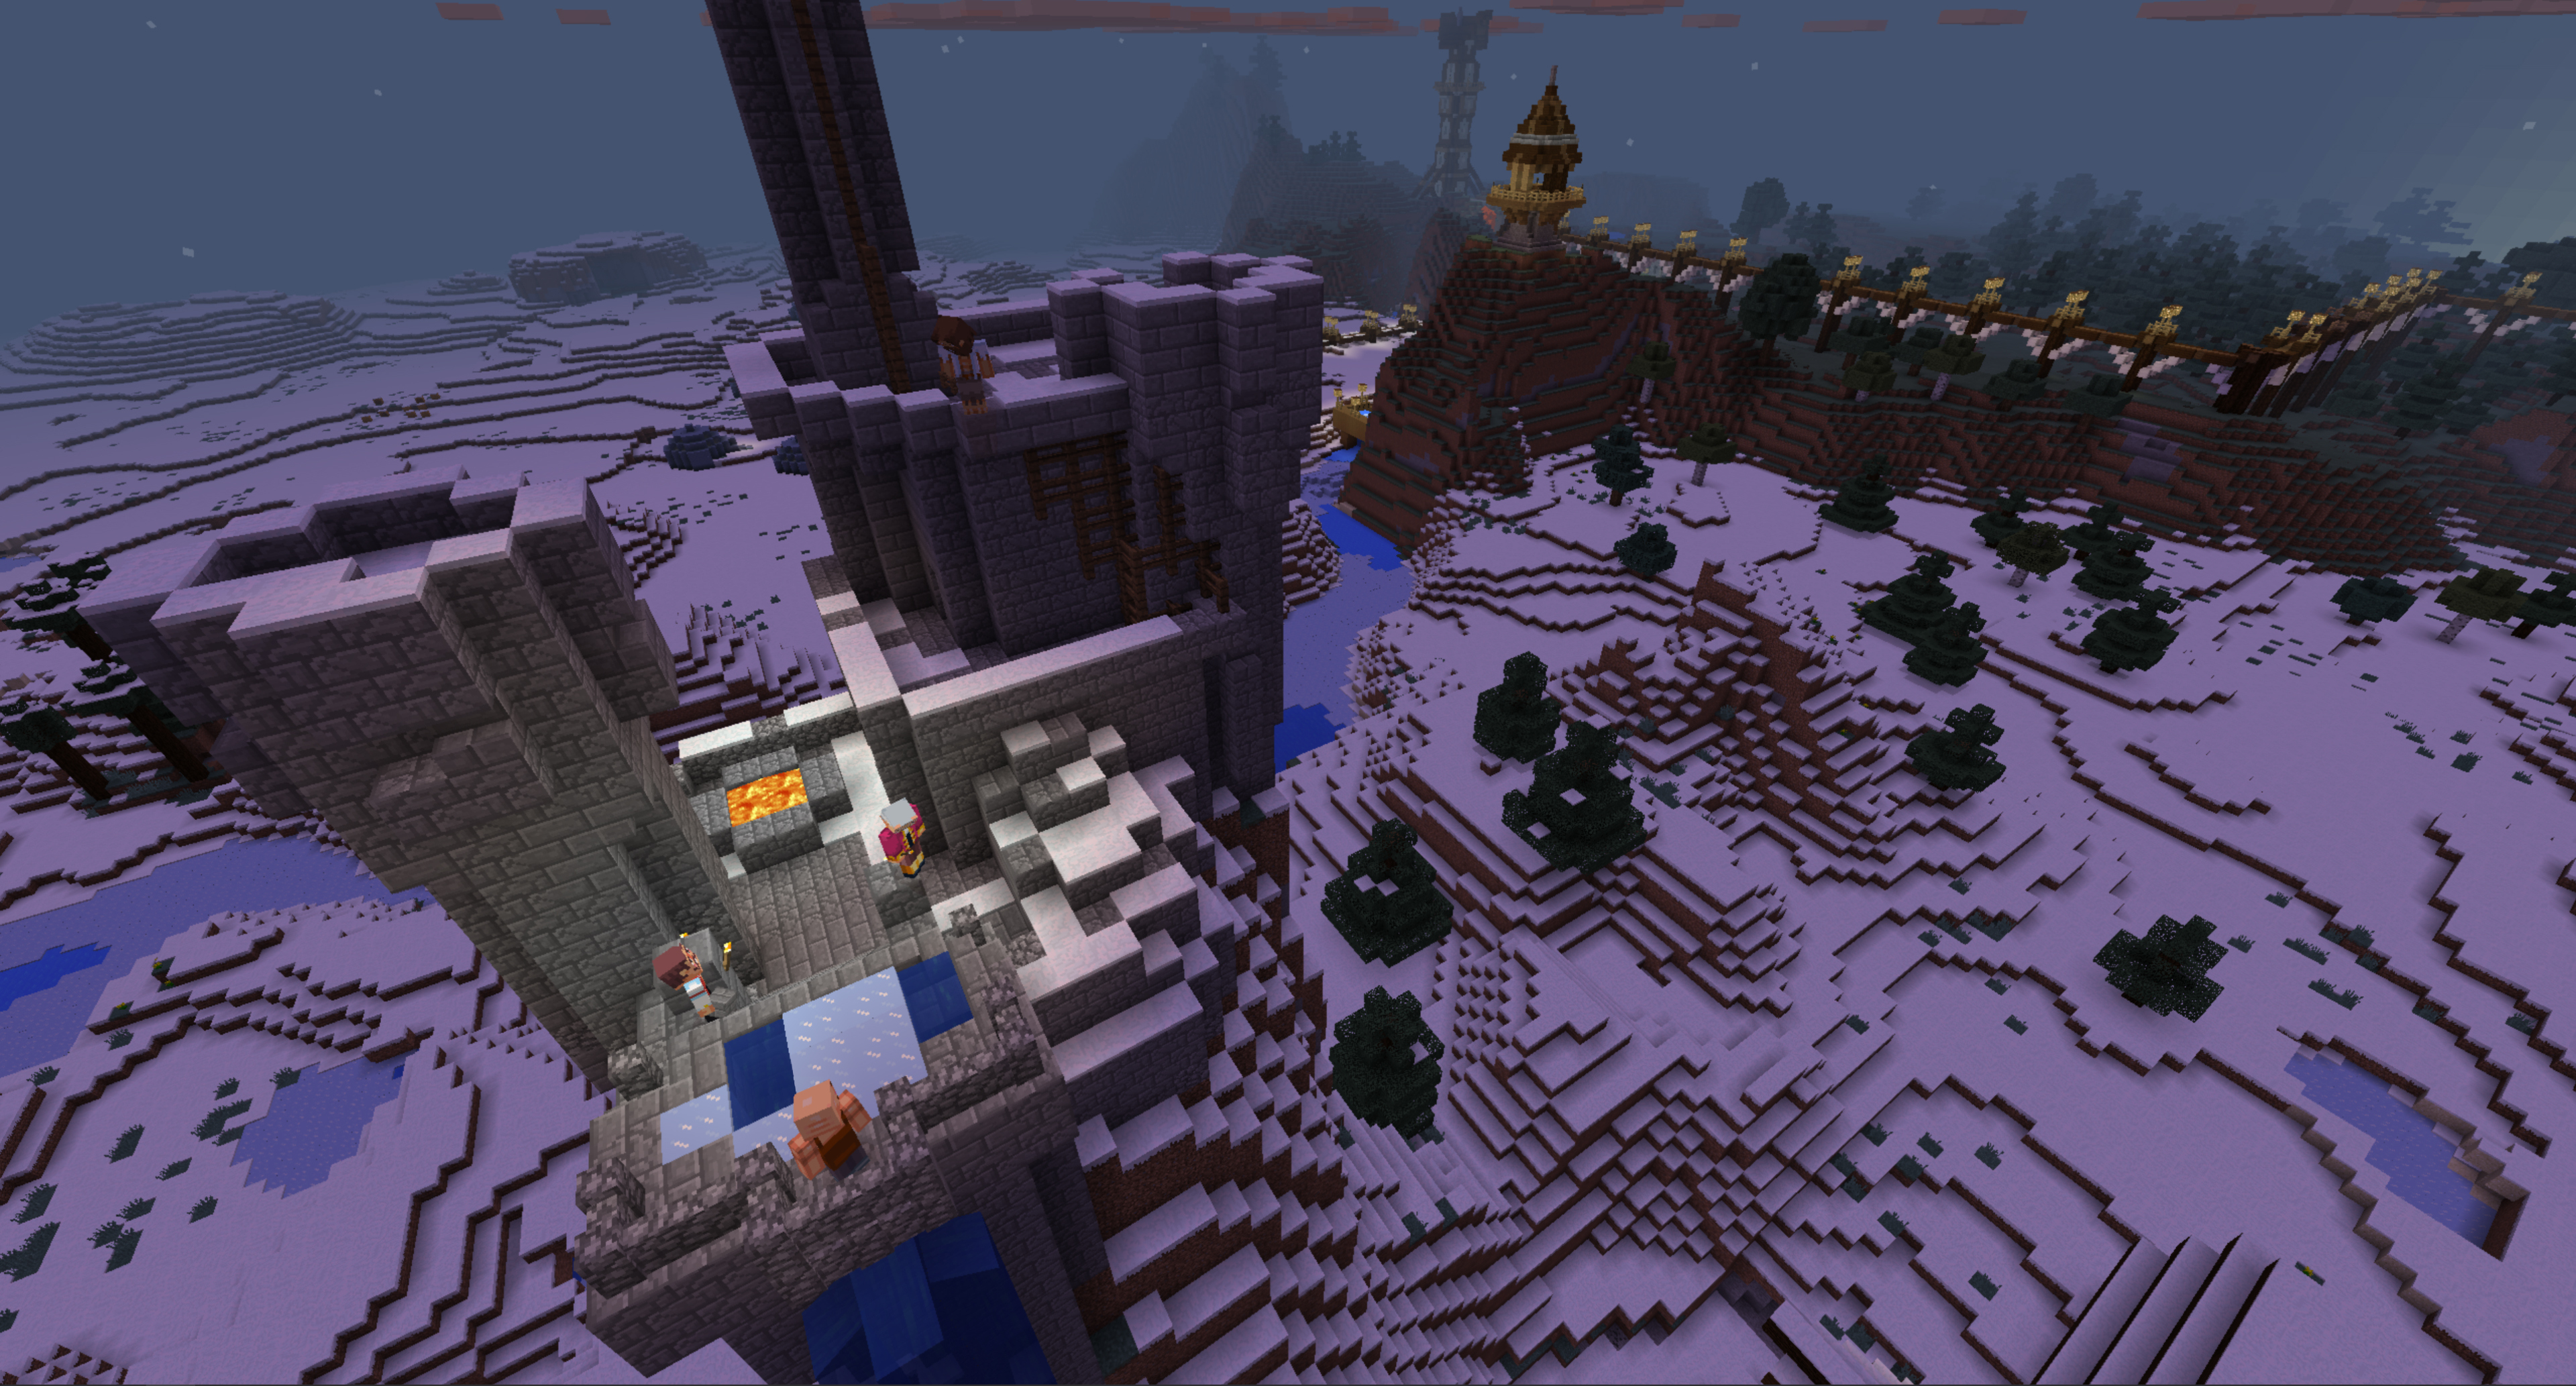 Mojang has expanded Minecraft to Windows 10 gamers post Microsoft acquisition.